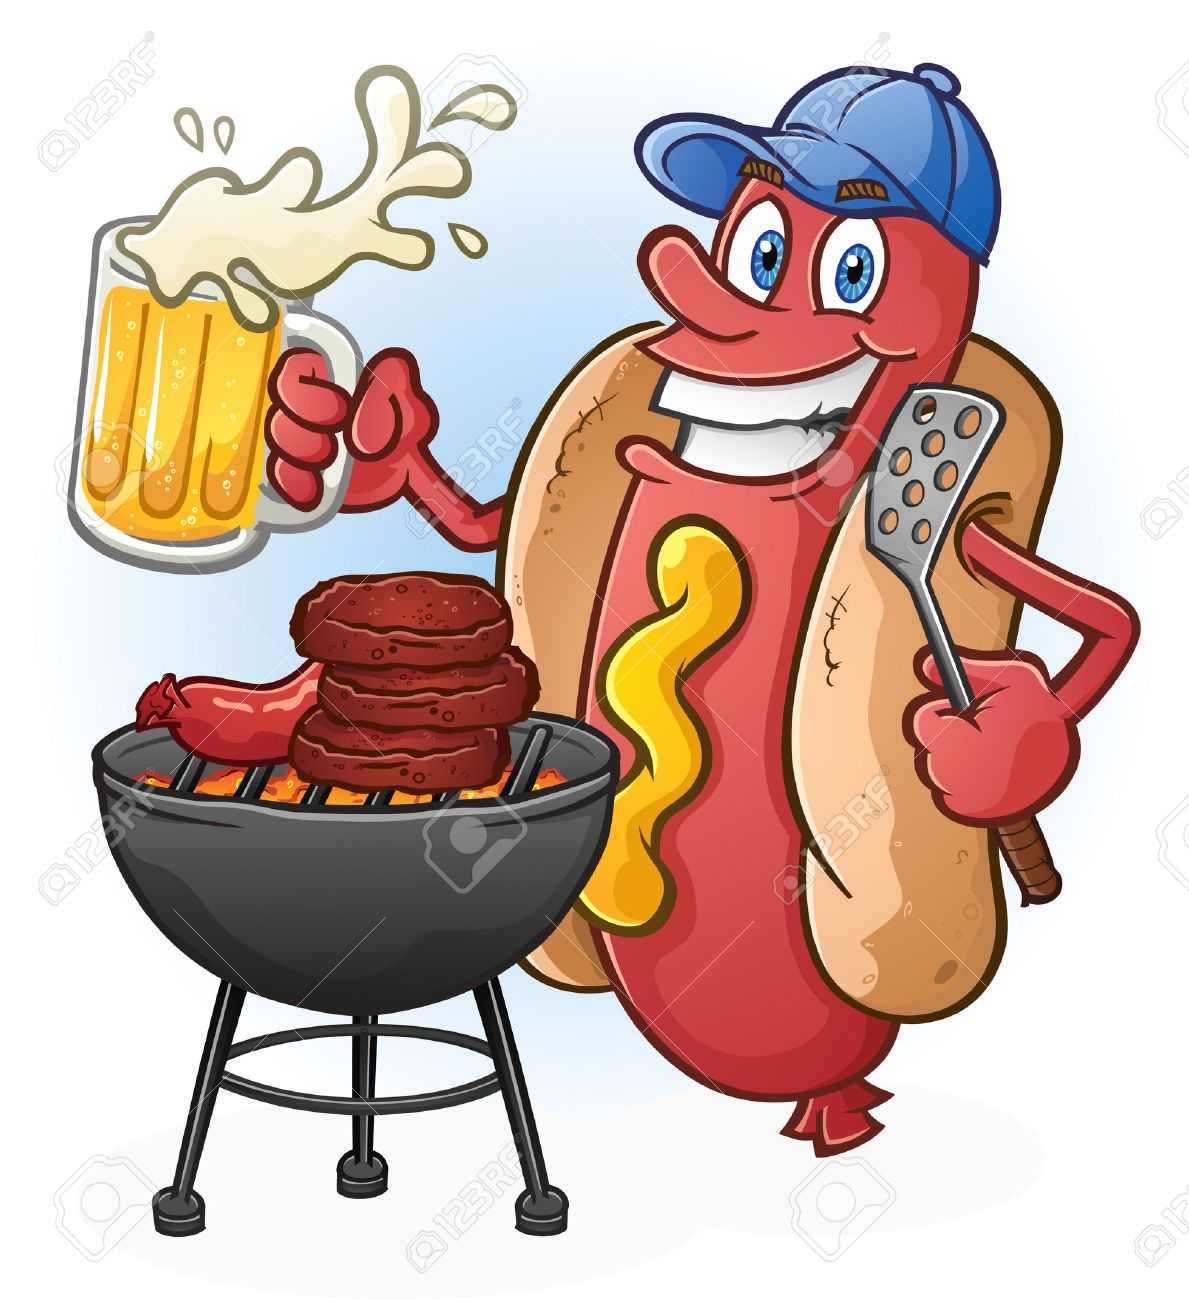 Hot Dog Cartoon Tailgating with Beer and BBQ Cartoon Character.